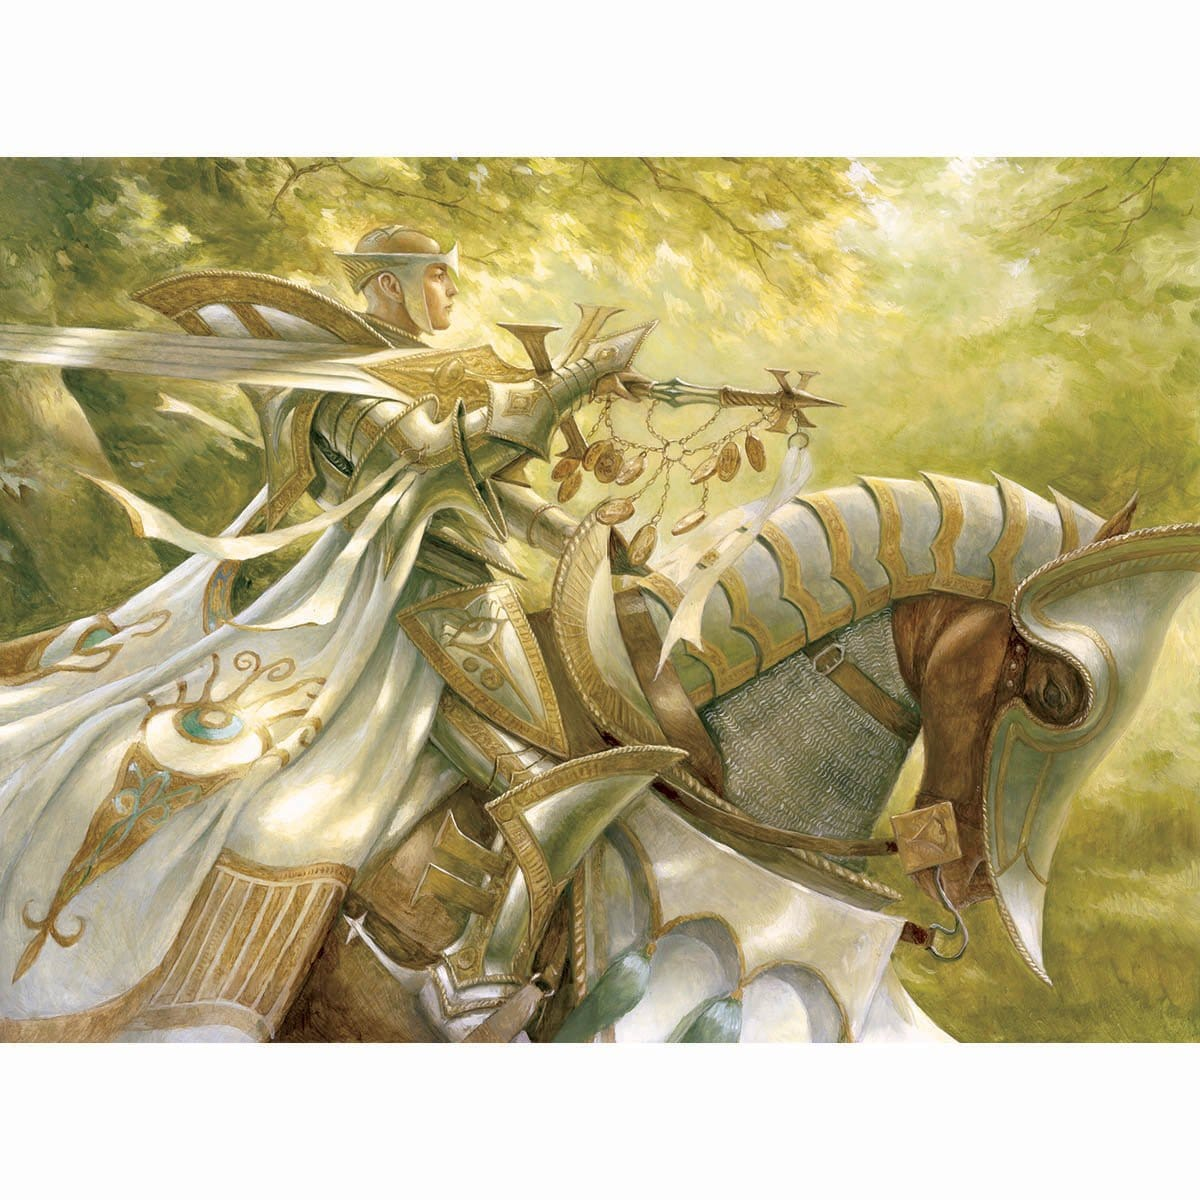 Knight of the Skyward Eye Print - Print - Original Magic Art - Accessories for Magic the Gathering and other card games